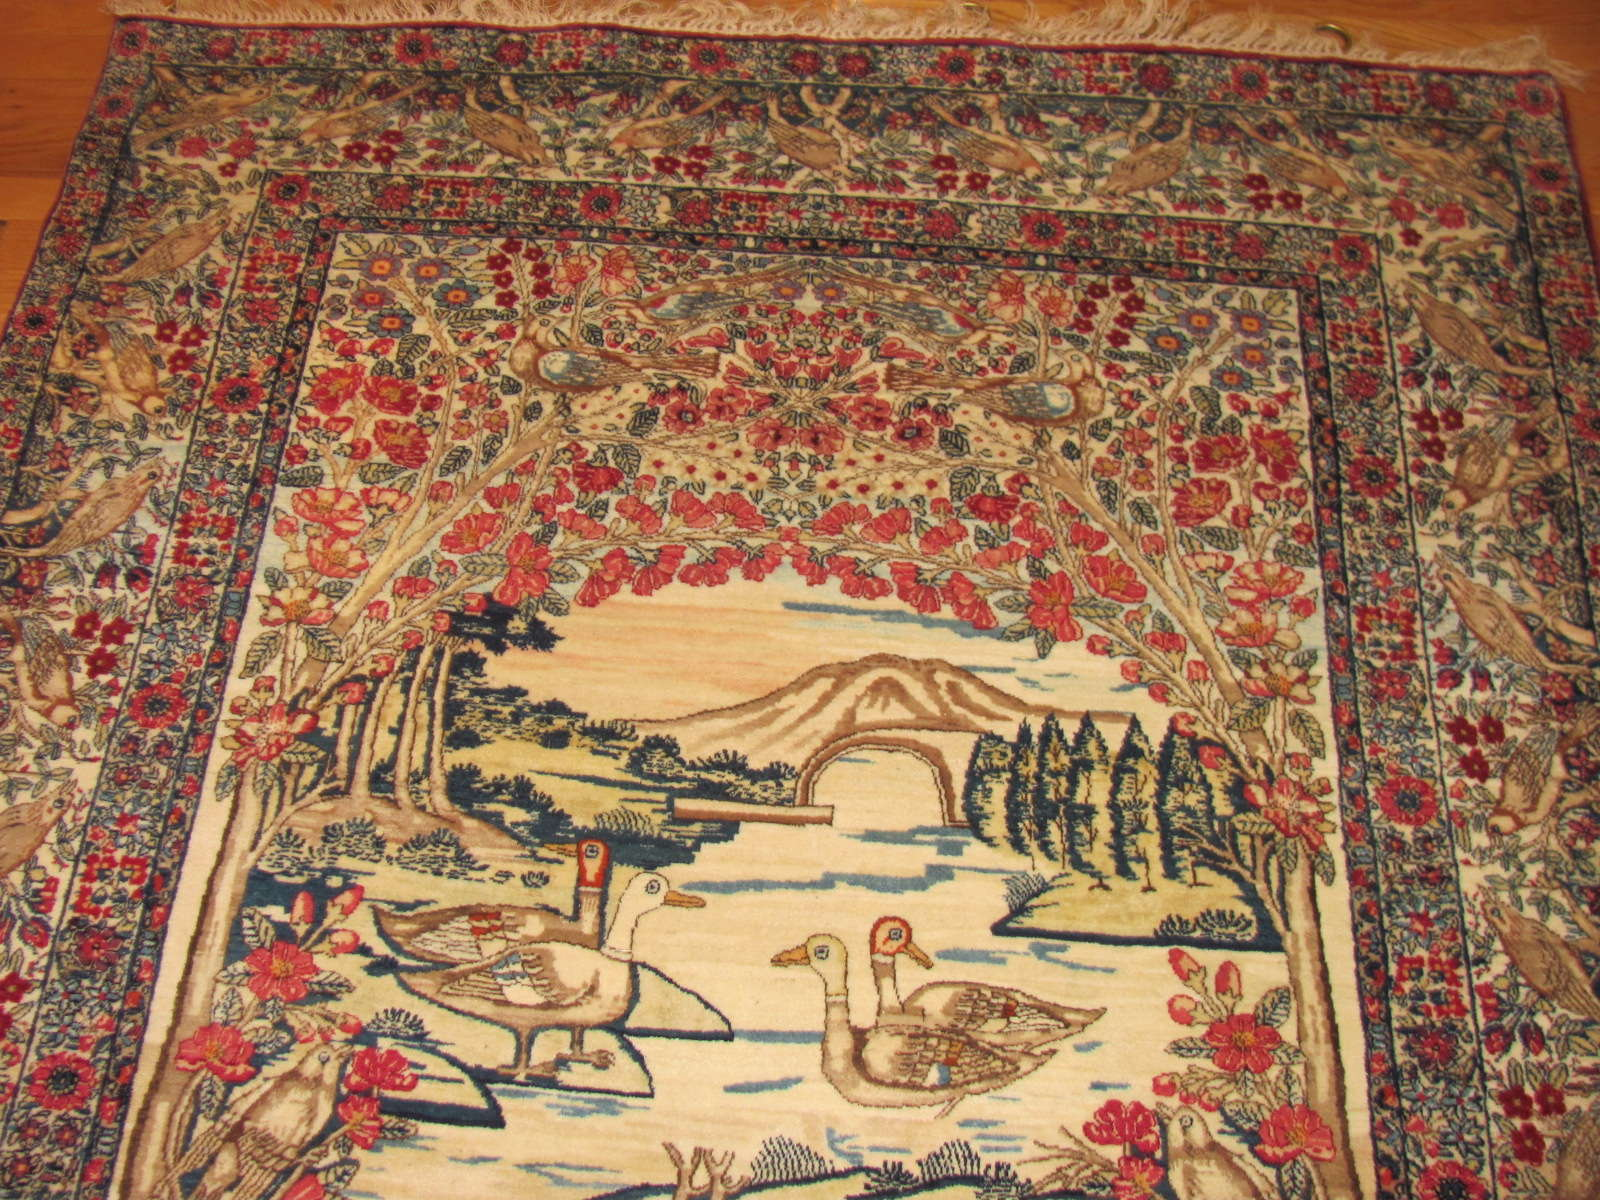 24595 antique persian kerman lavar pictorial rug 4,4 x 6,10 -1